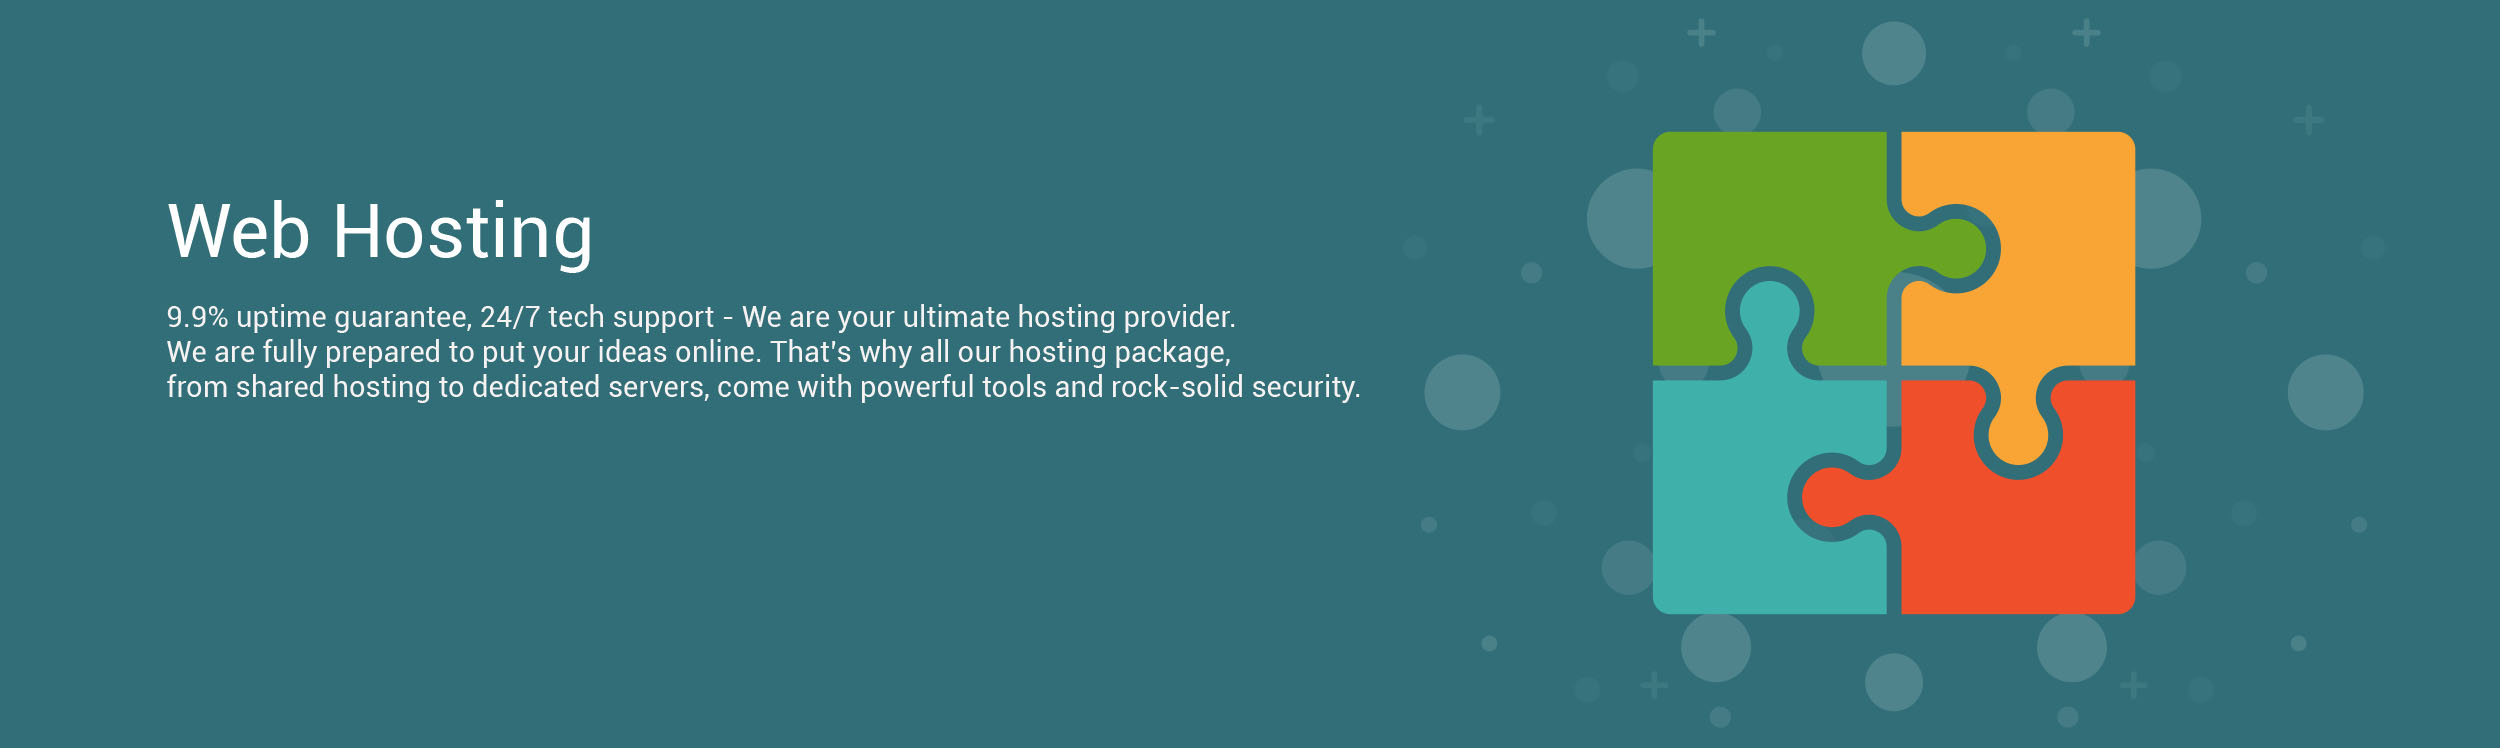 Ultimate Web Hosting Provider Mauritius